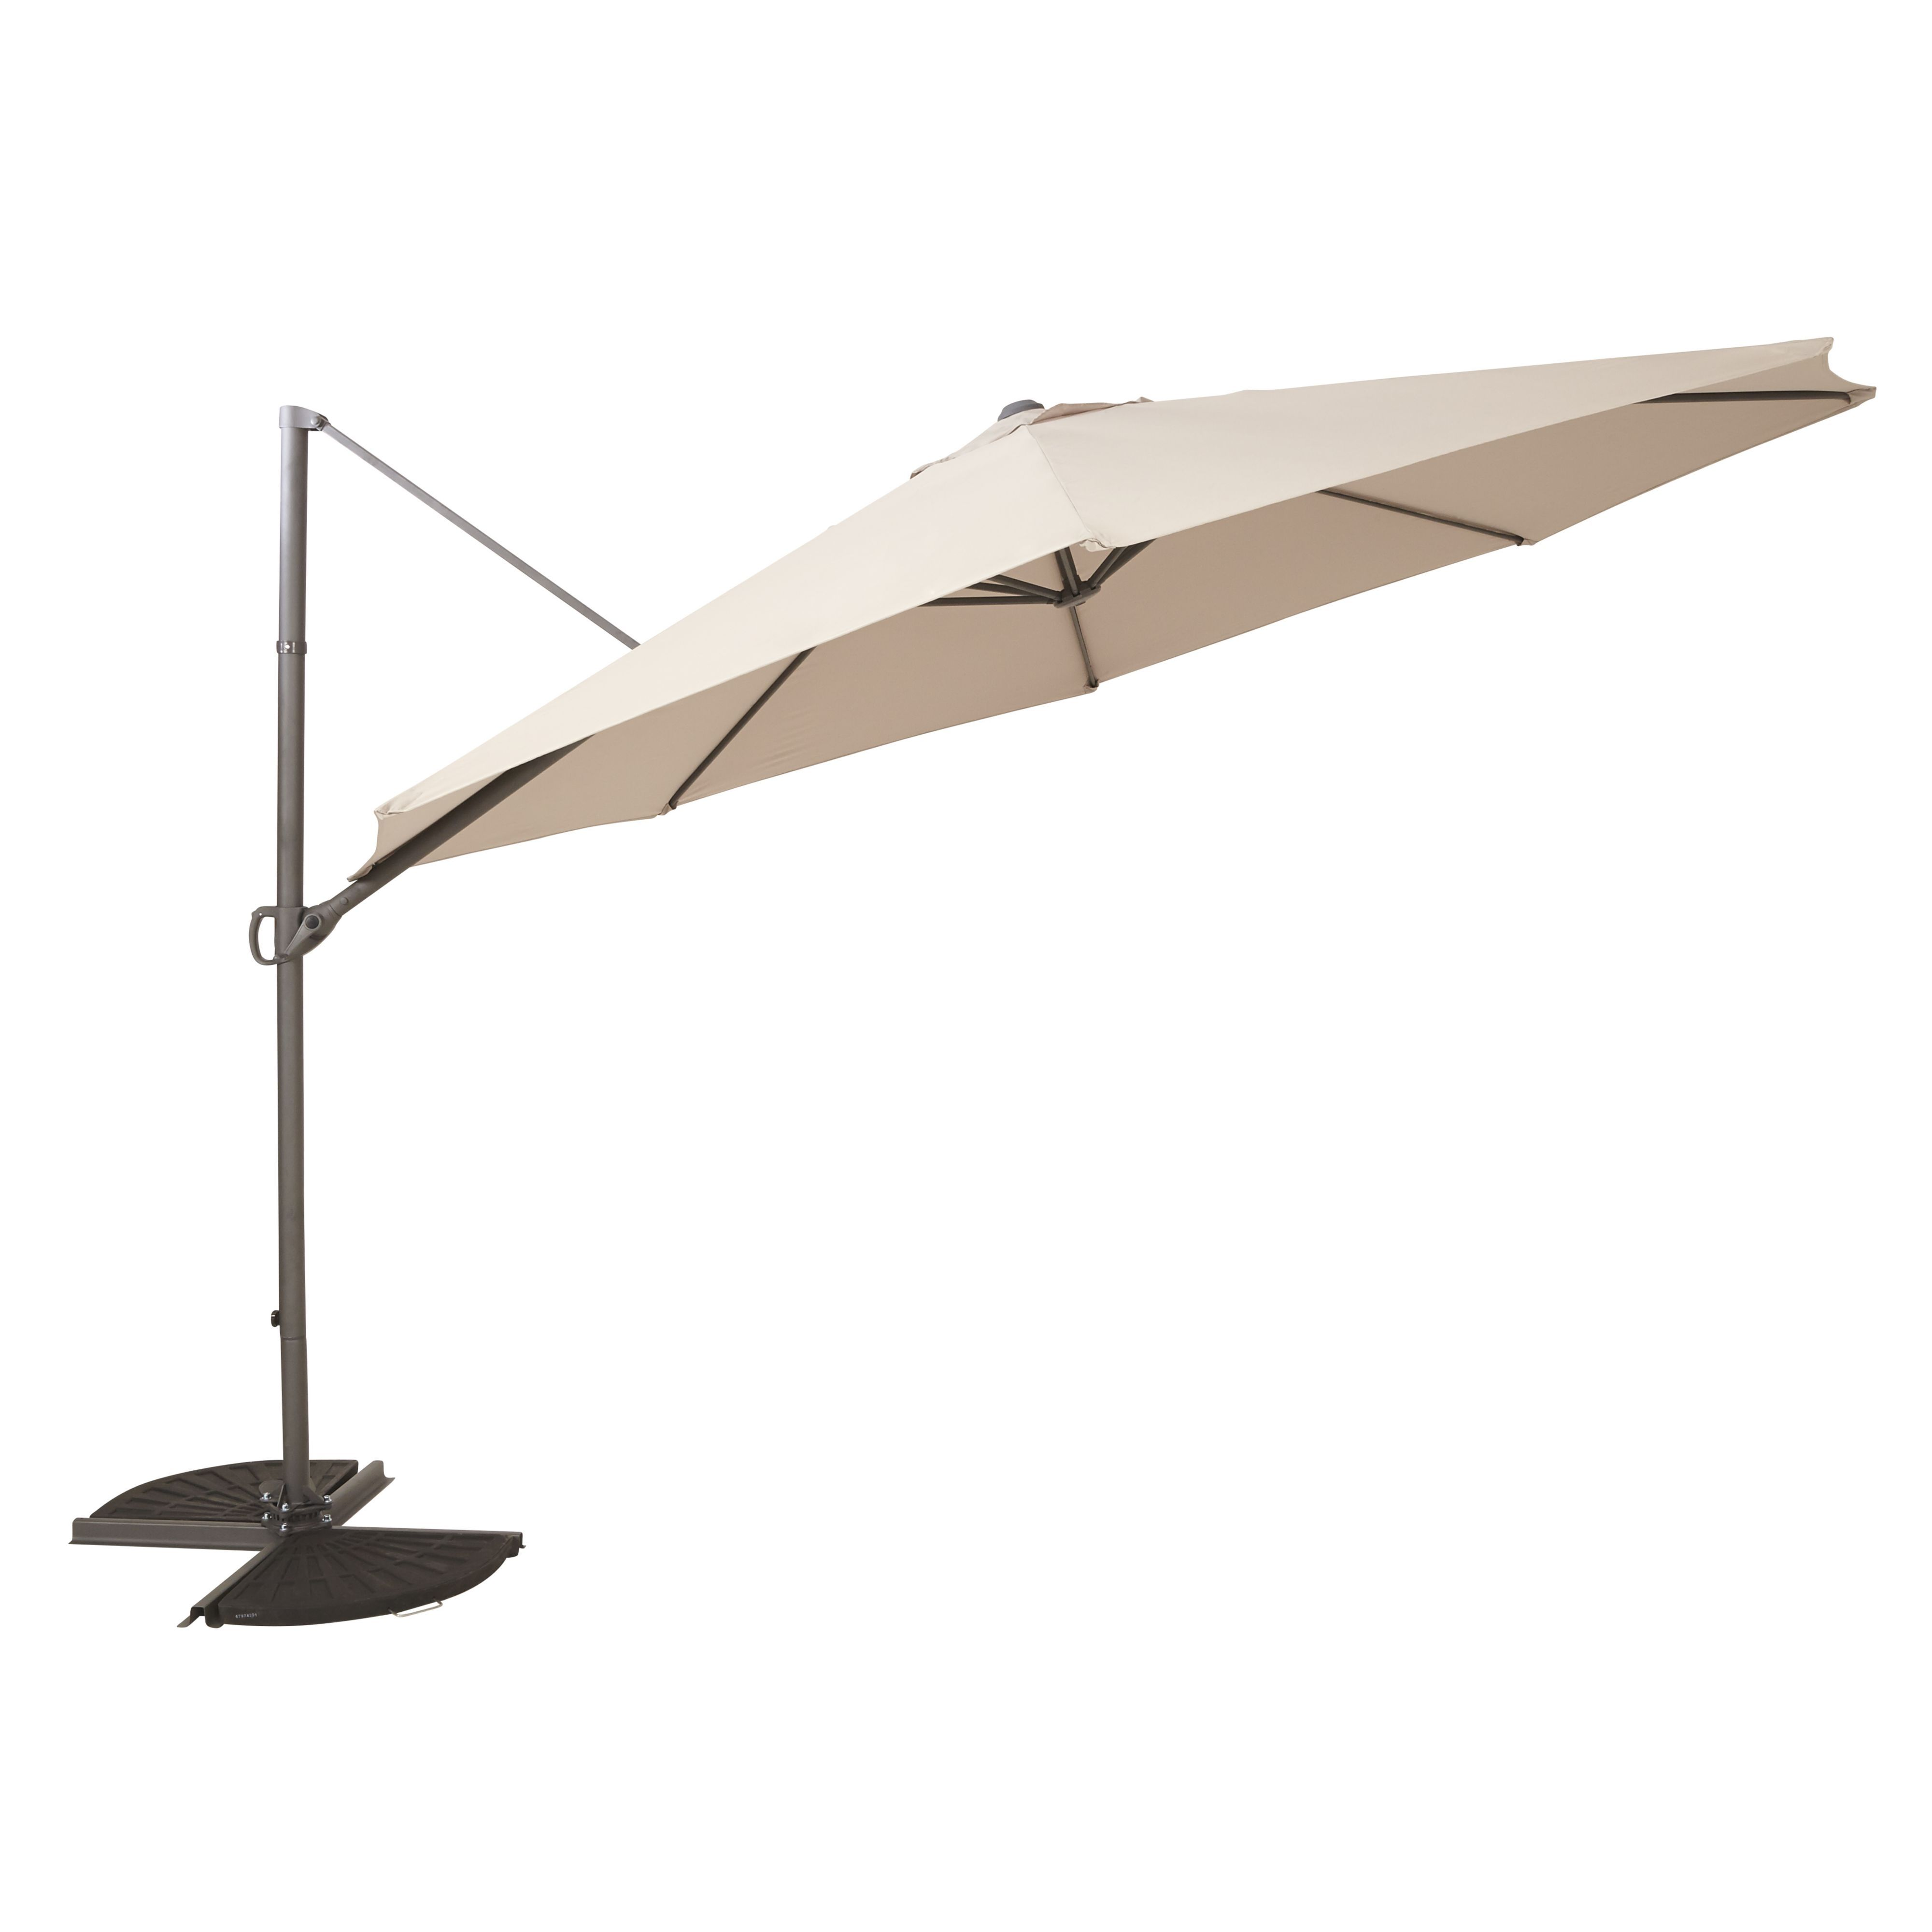 Mallorca 3.5m Taupe Overhanging Parasol | Departments | DIY at B&Q ...